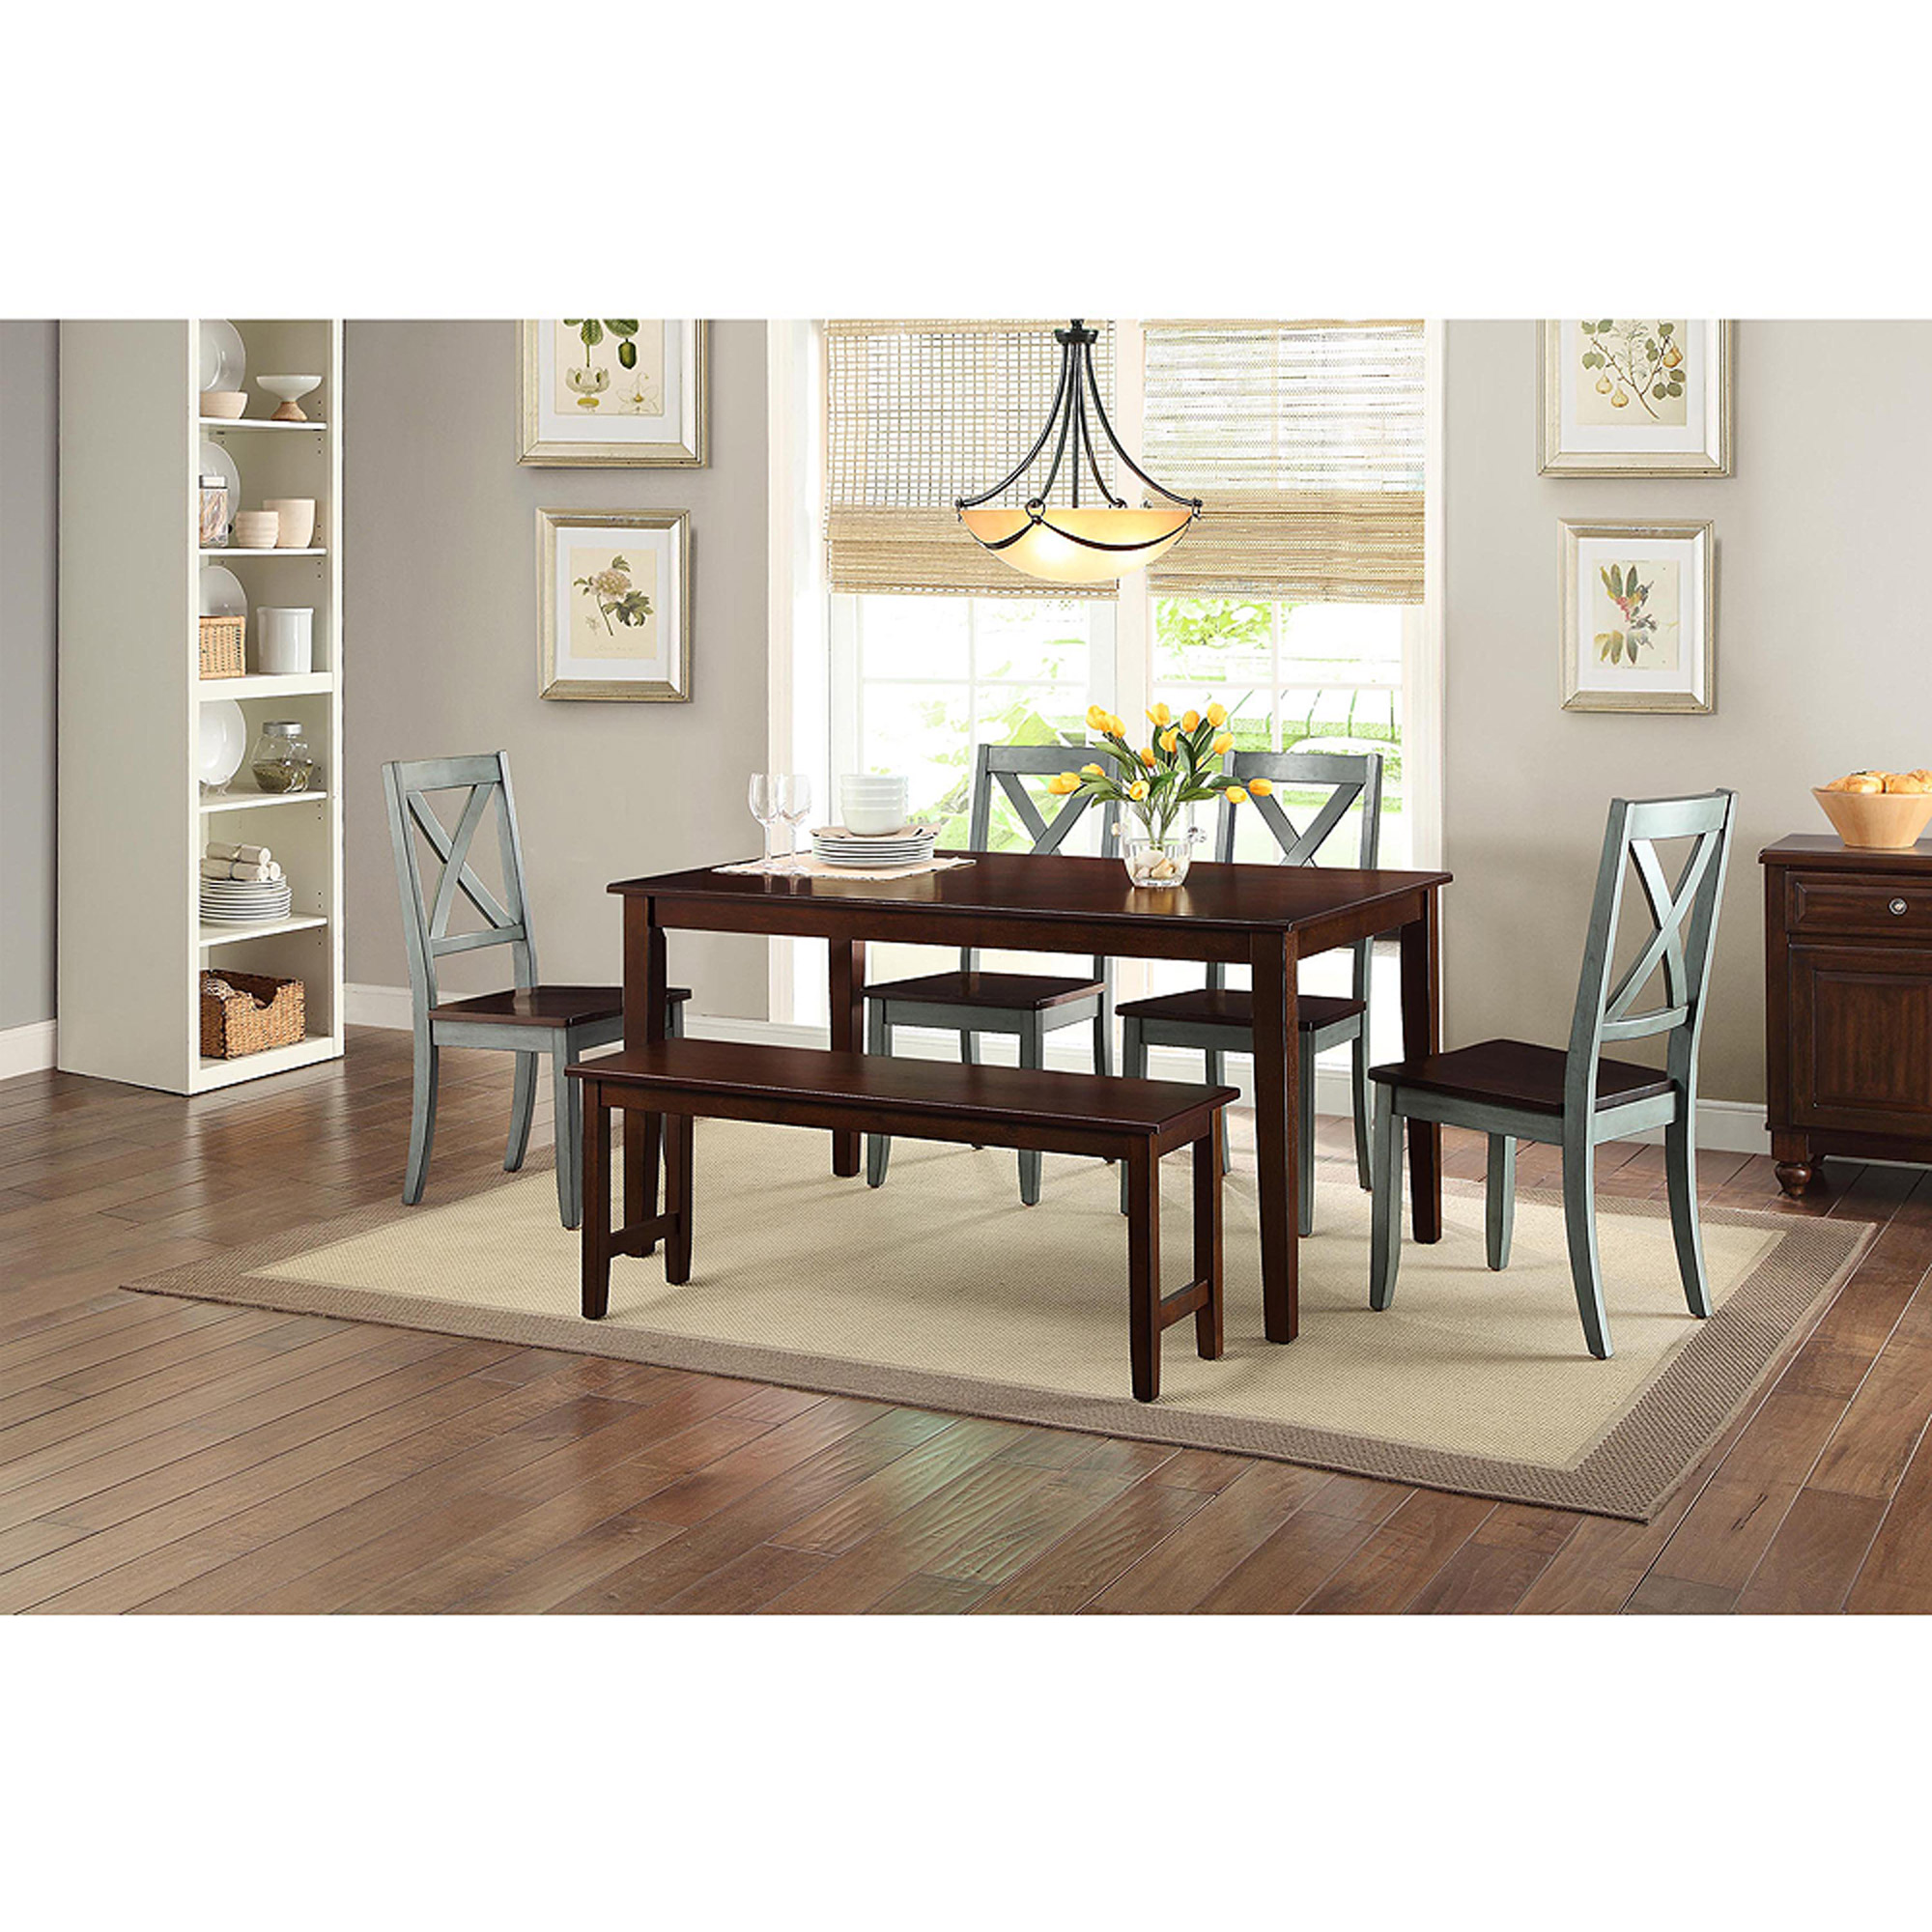 Better Homes And Gardens Bankston Mocha 6 Piece Dining Set With 4 Maddox Blue Chairs Bench